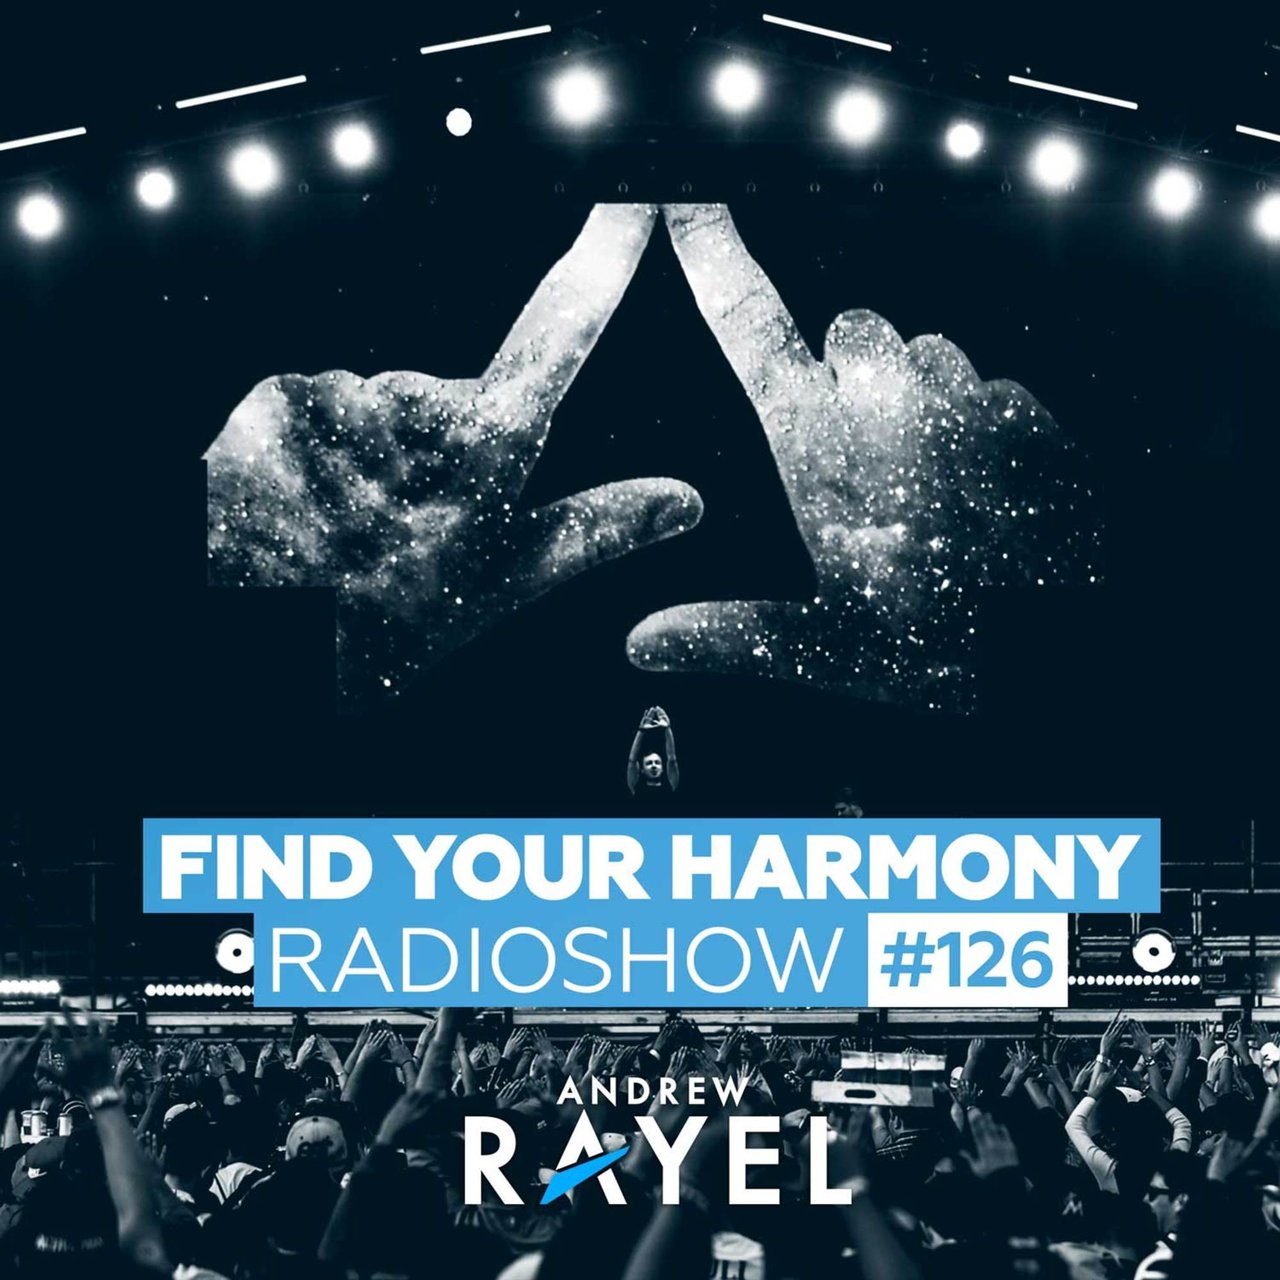 Find Your Harmony Radioshow #126